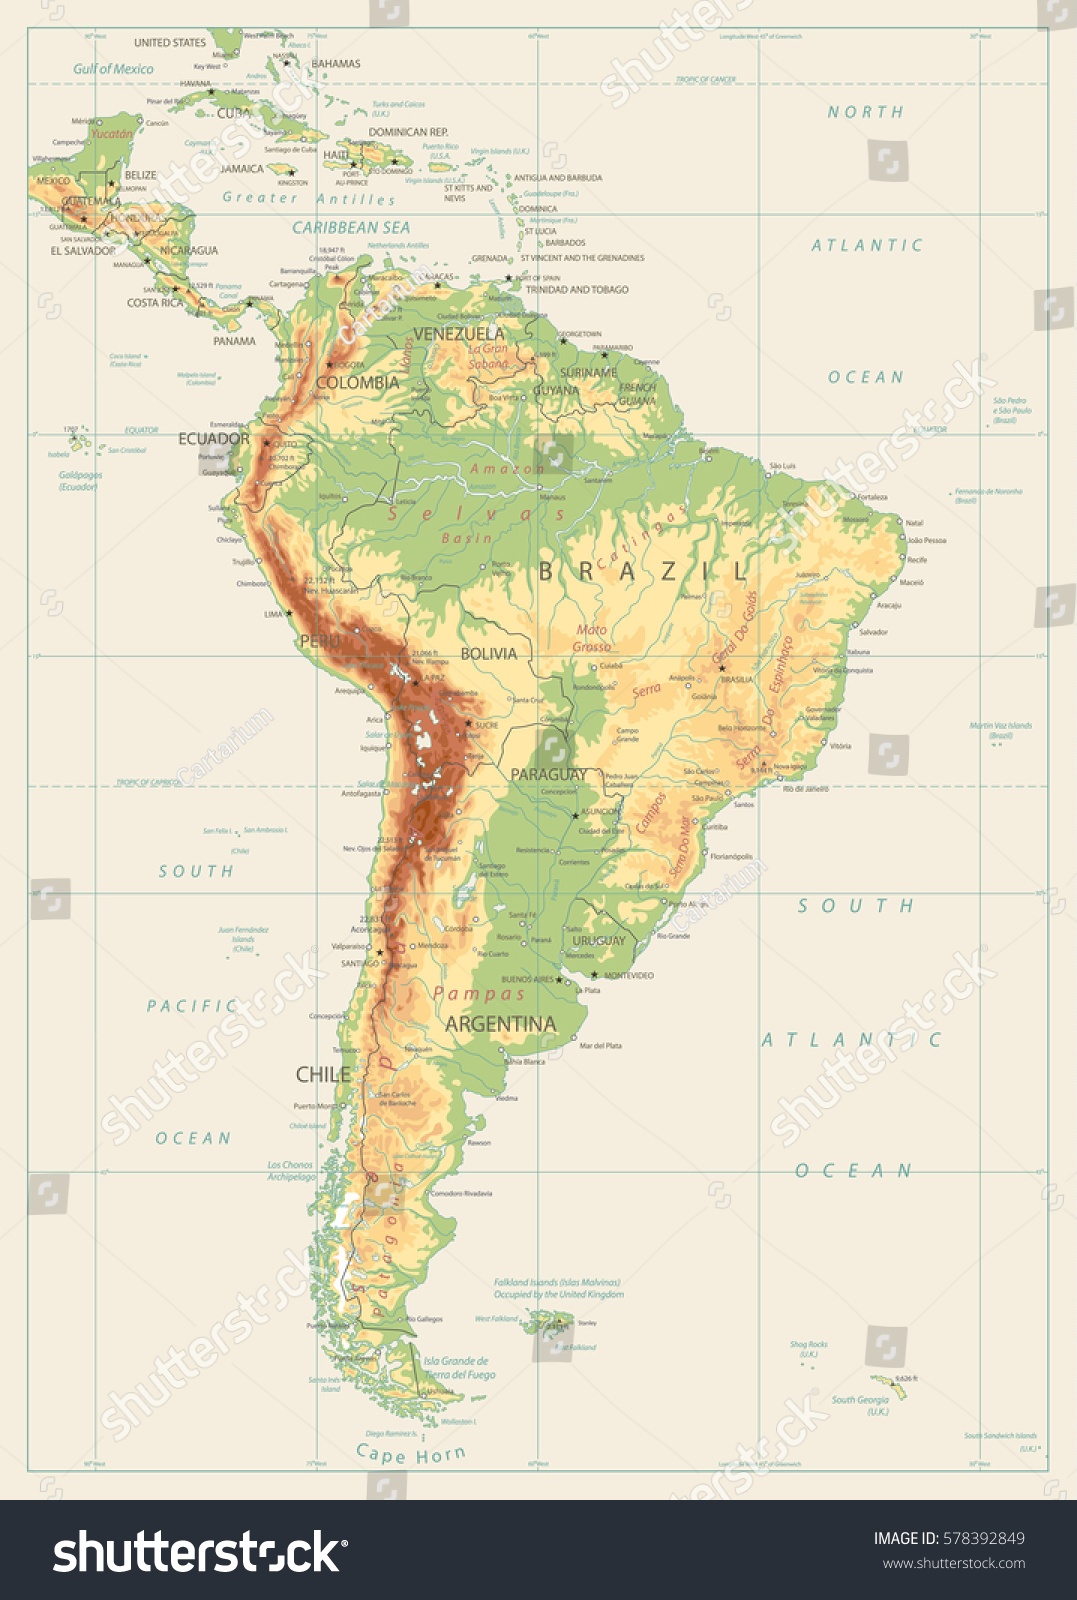 South America Detailed Physical Map Global Stock Vector - Chile physical map